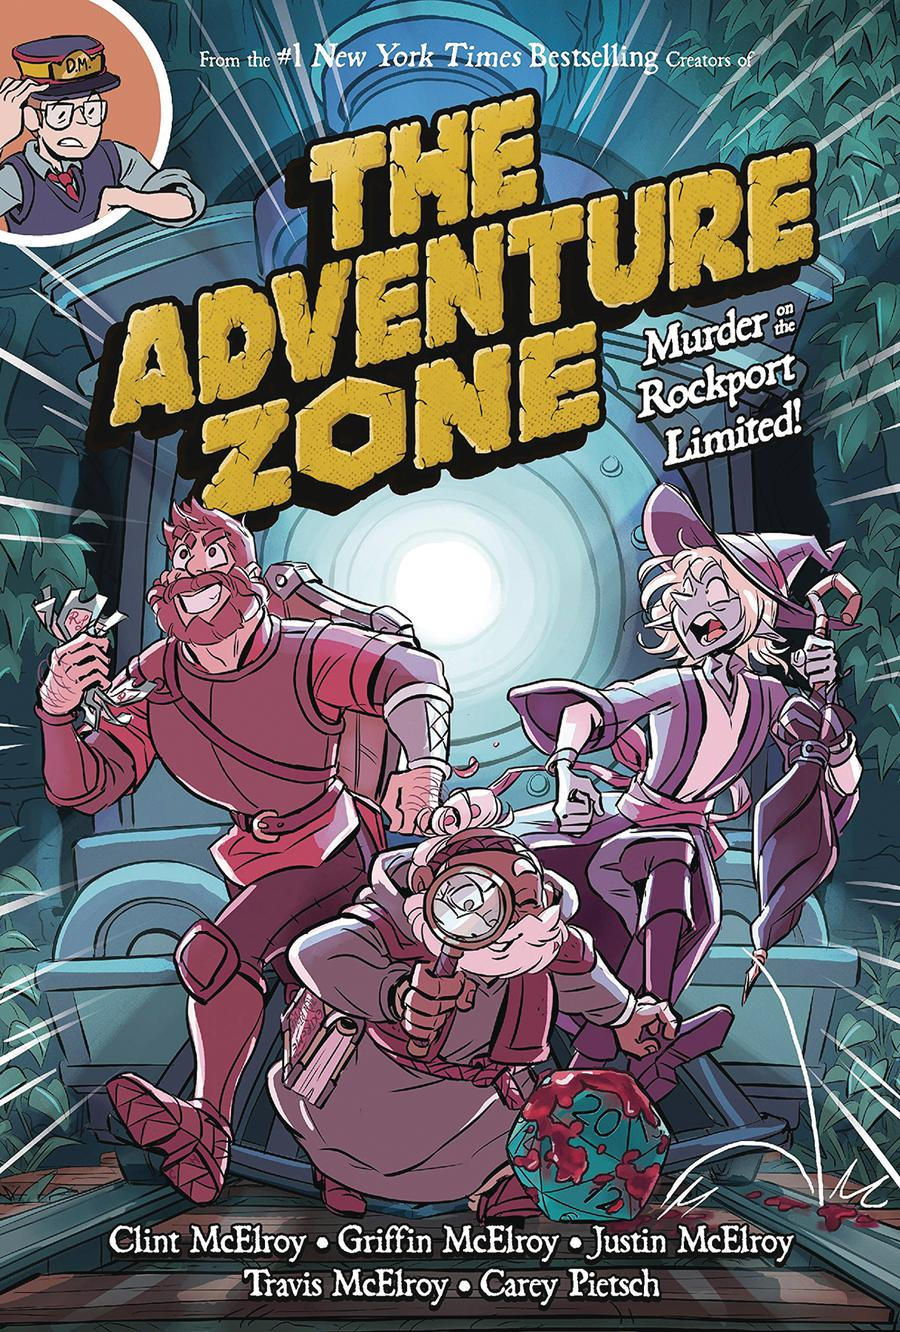 Adventure Zone Vol 2 Murder On The Rockport Limited HC